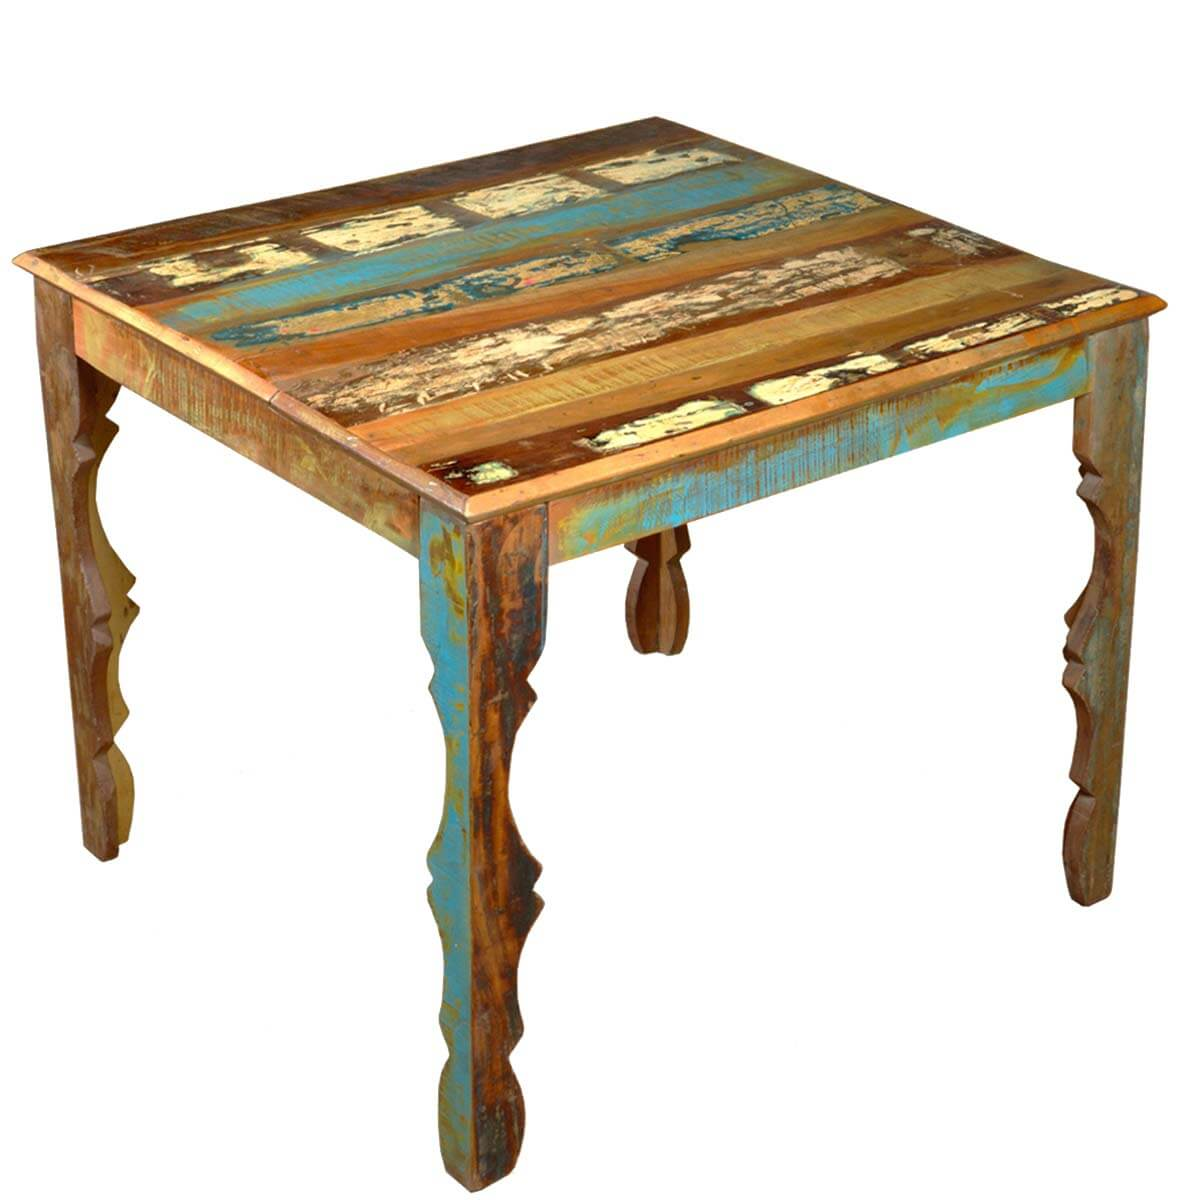 Rustic reclaimed wood 36 square dining table w decorative for Petite table decorative